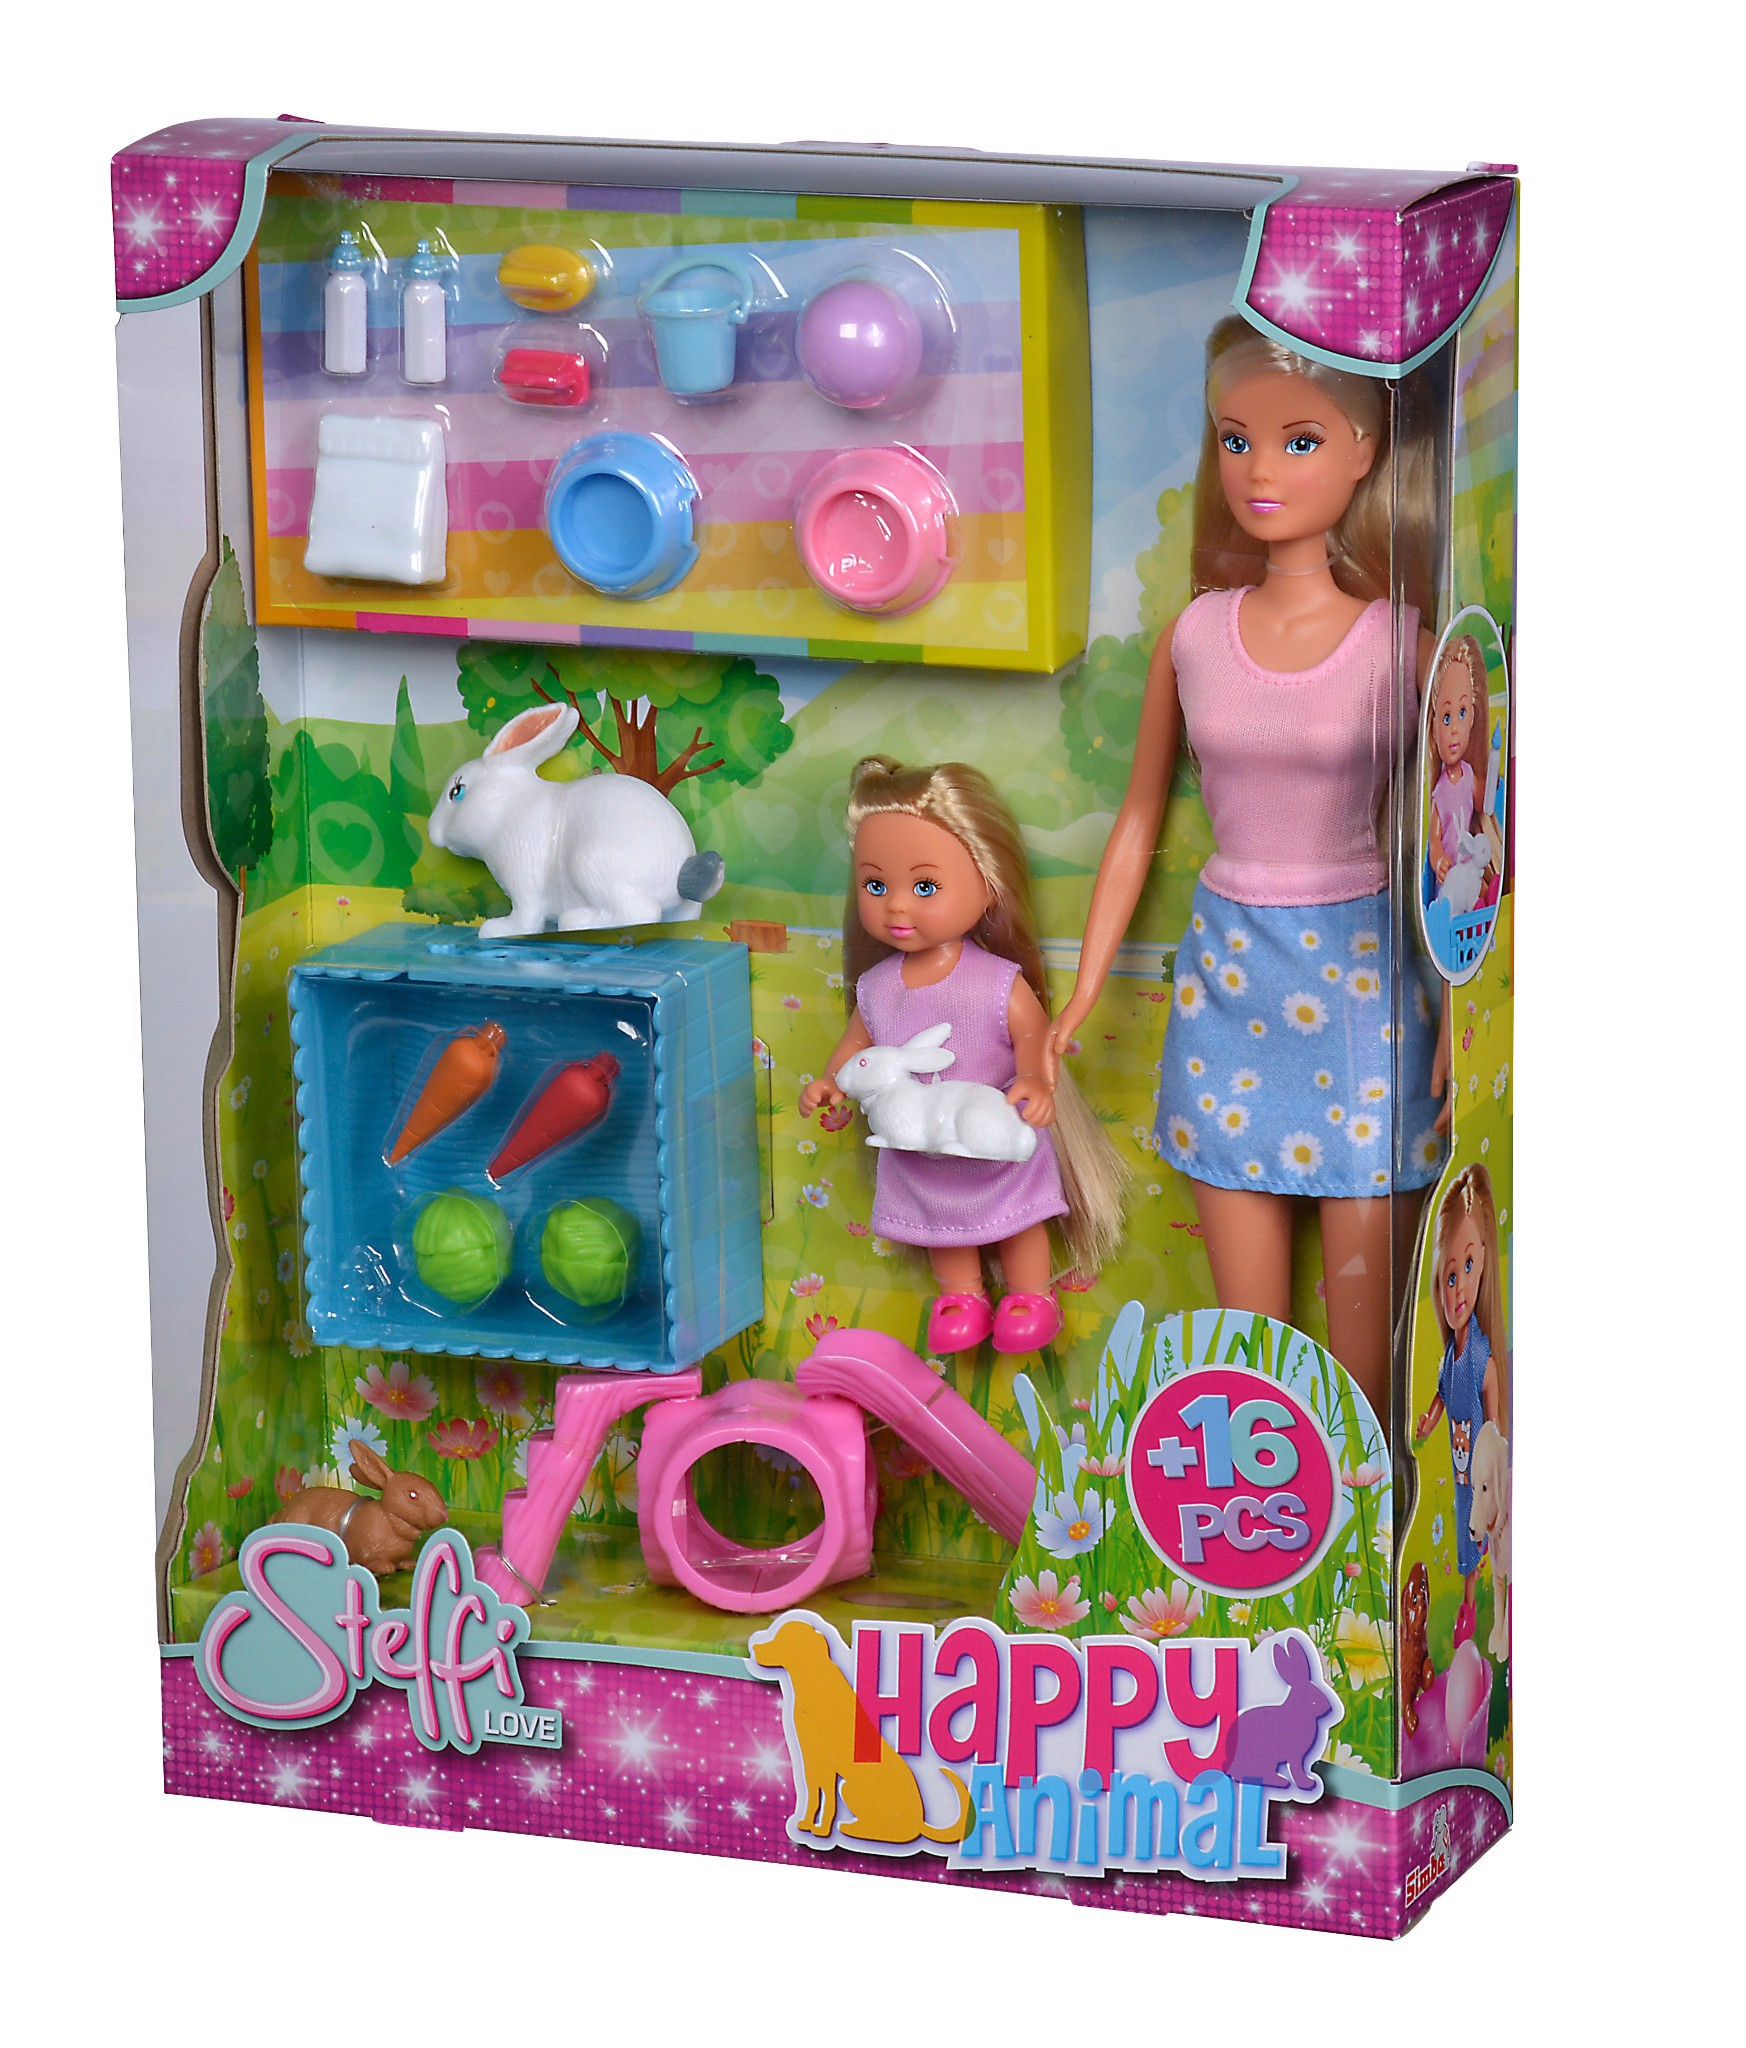 105732156 Búp bê Steffi Love Happy Animal, 2-ass.